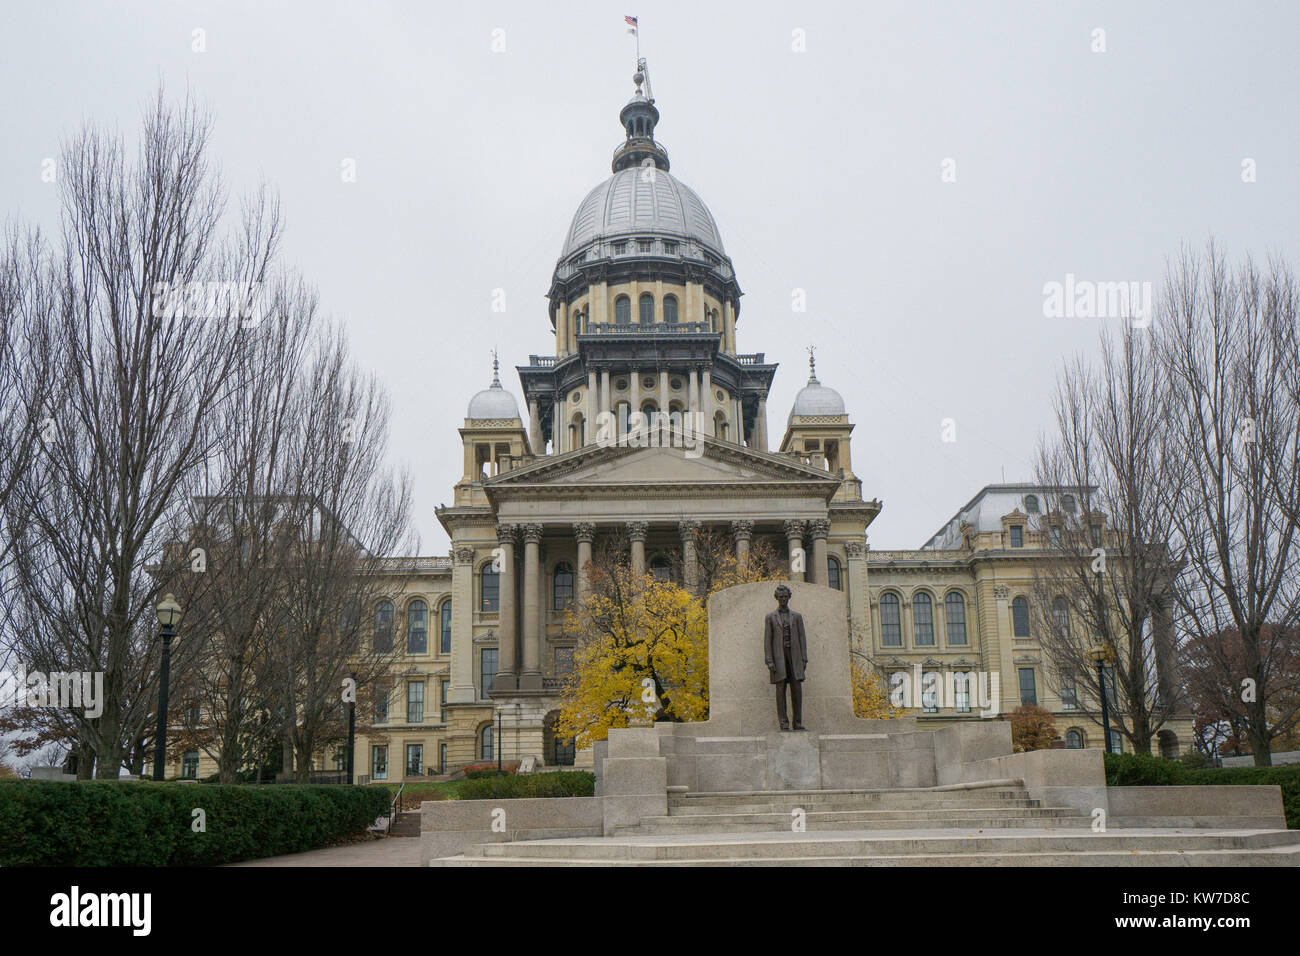 Abraham Lincoln statue in front of Illinois State Capitol building in Springfield. - Stock Image